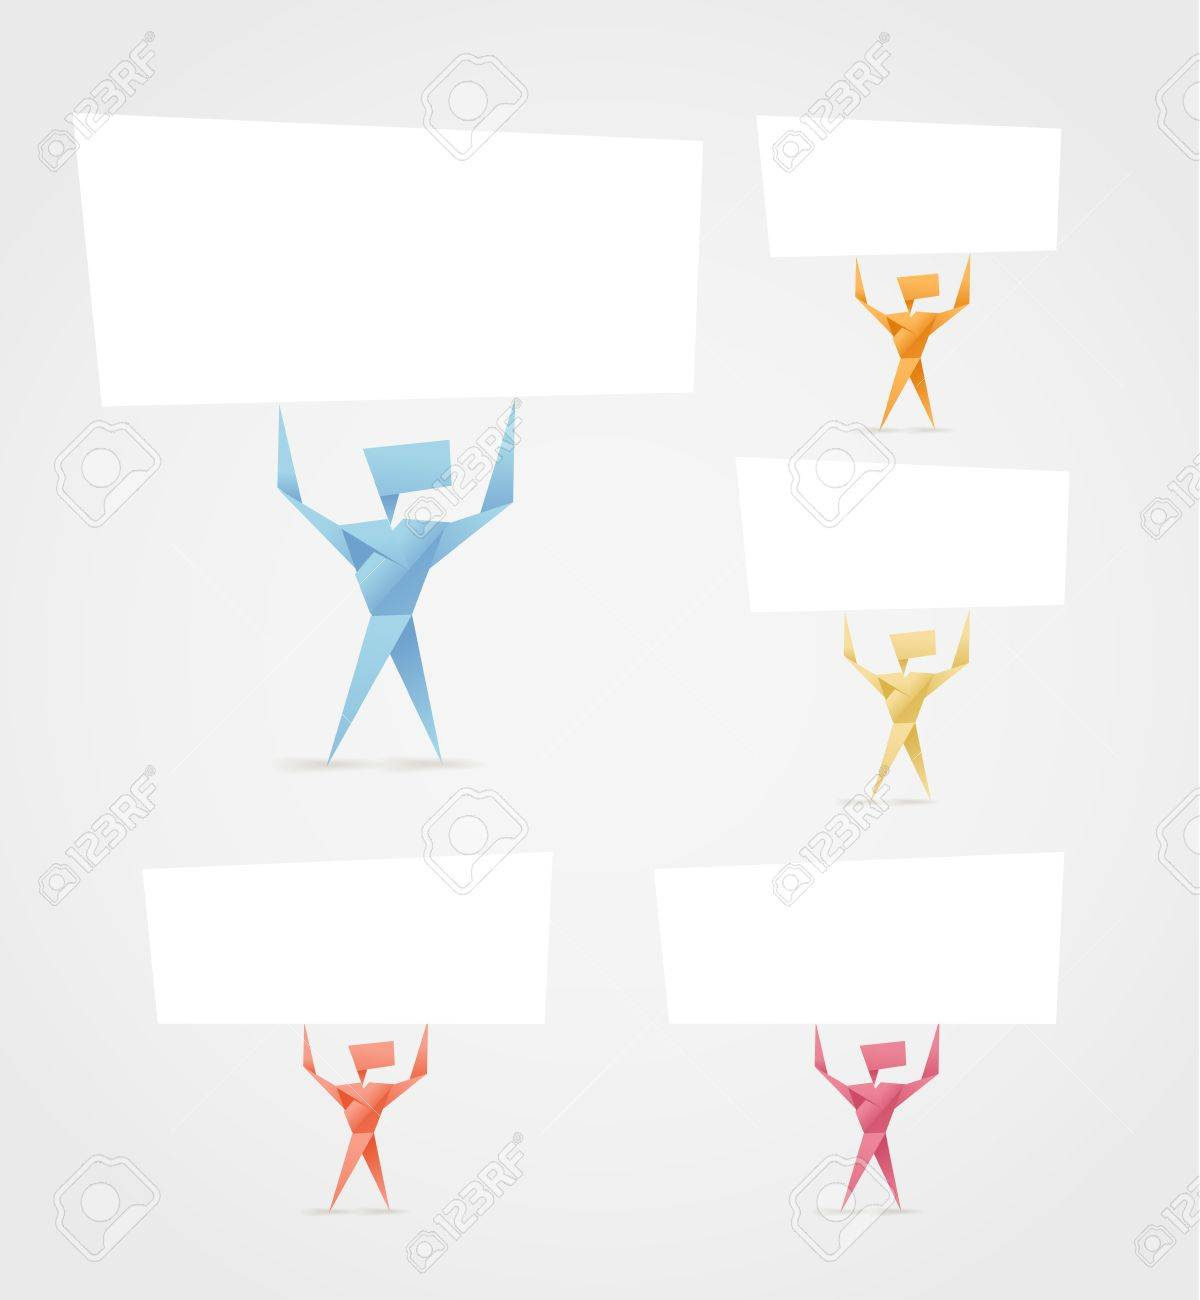 abstract origami men with paper banners template for a text royalty